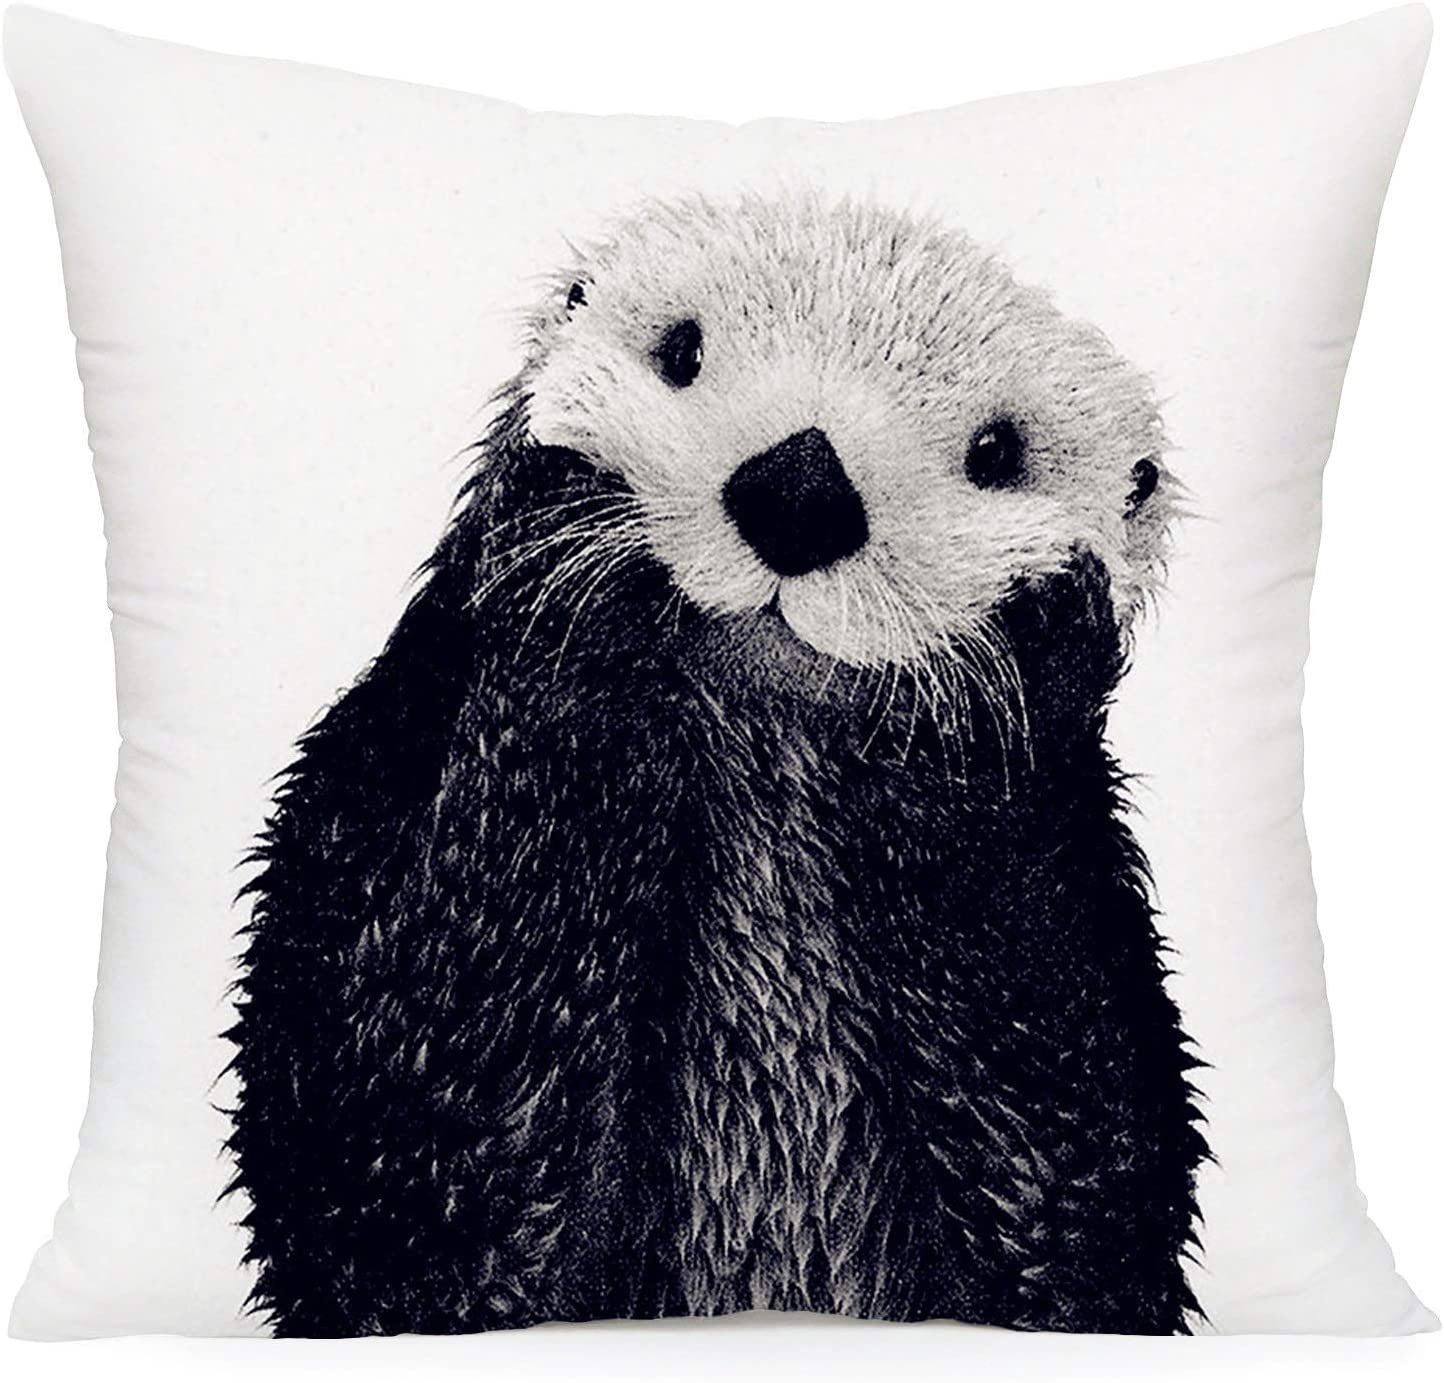 Smilyard Otter Throw Pillow Covers Super Soft Decorative Pillow Covers Animal Cushion Cover for Home Sofa Bedroom Decor 18X18 Inch (Black Otter)